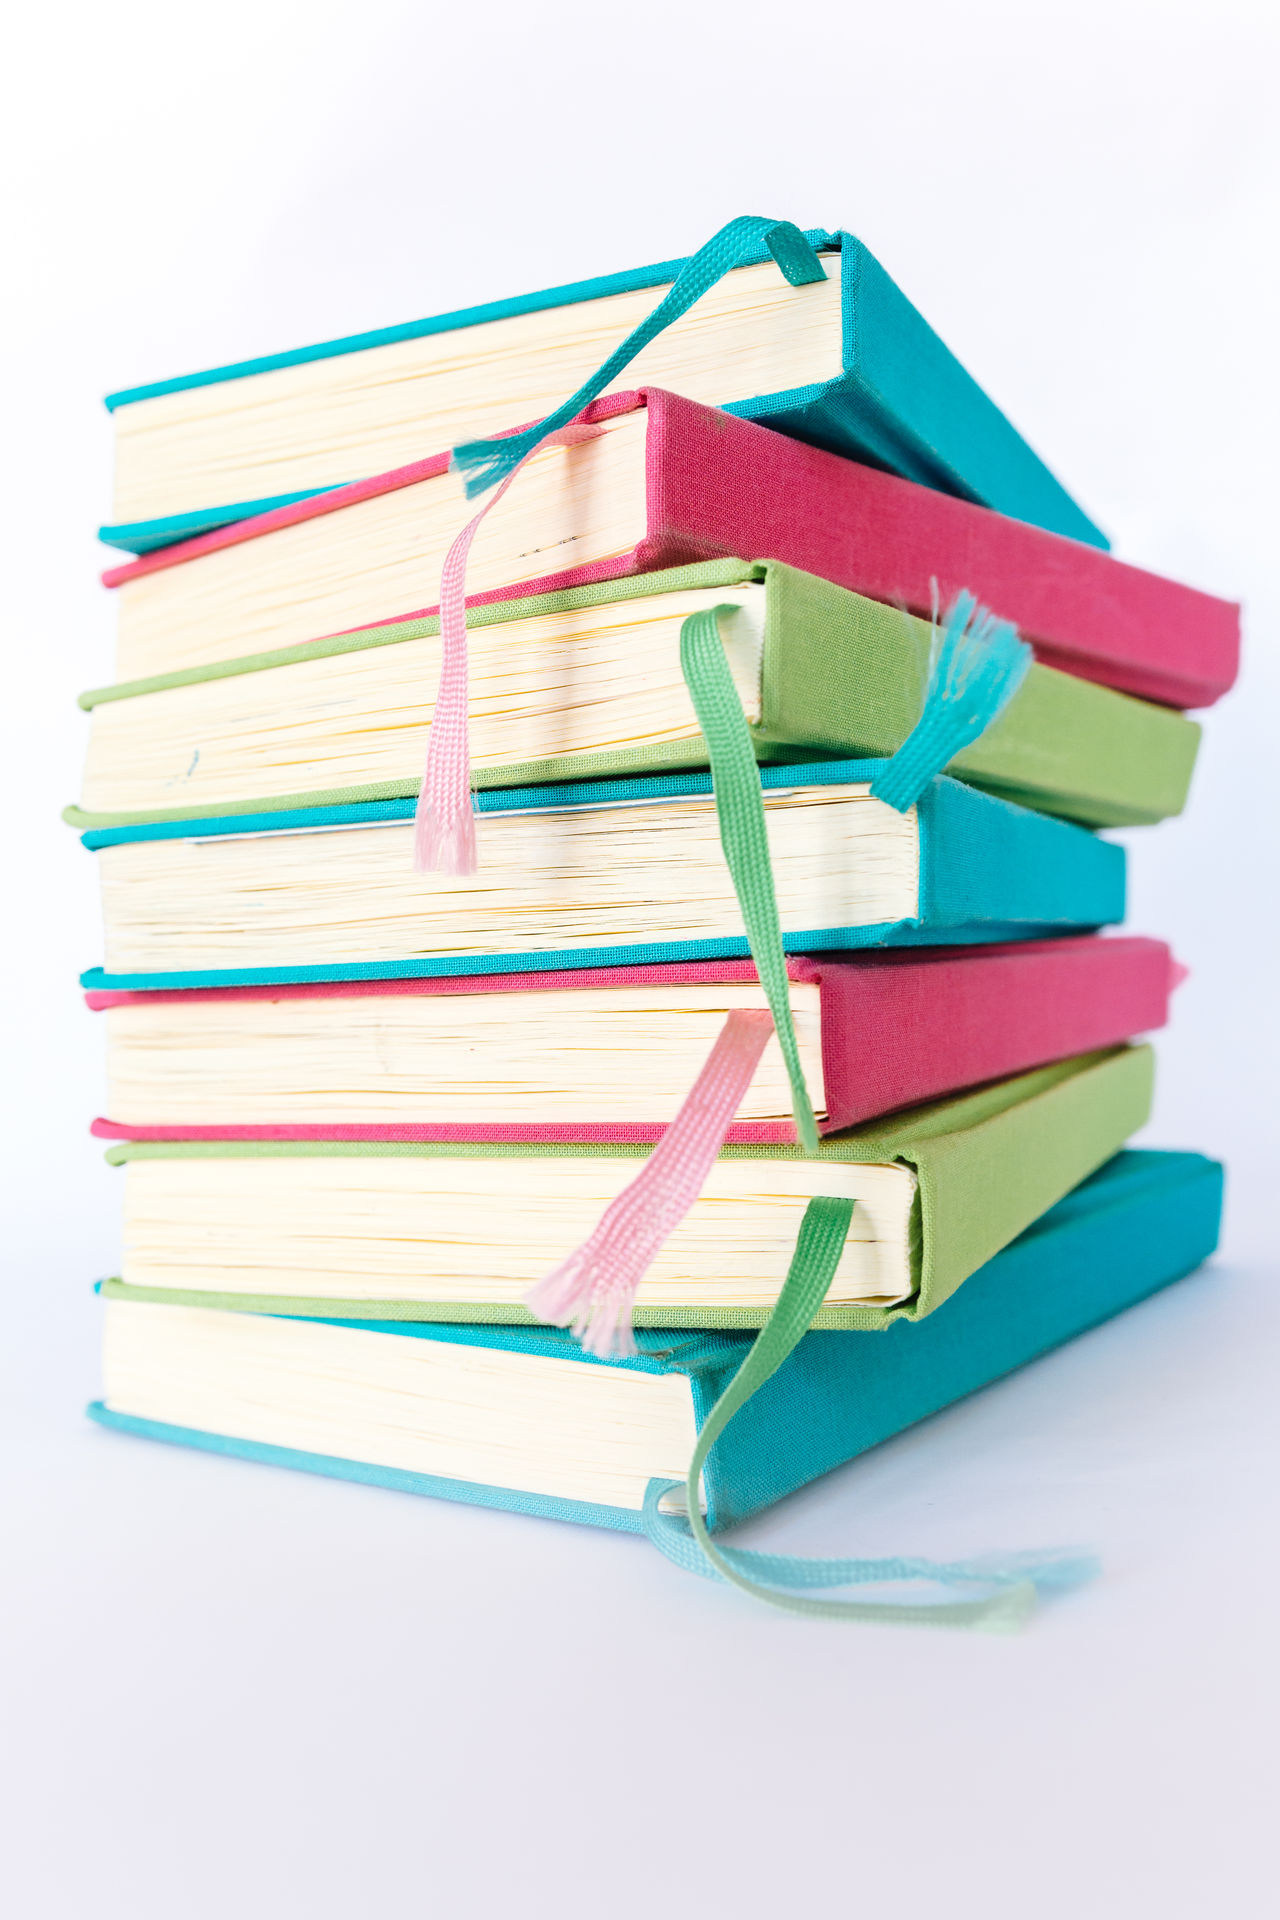 Colorful Books Blue Books Colorful Colors Cyan Education Educational Green Heap Learning LearningEveryday Multi Colored No People Pink Reading Reading Books Reading Time Stack Studio Shot Study Hard Study Time Studying White Background